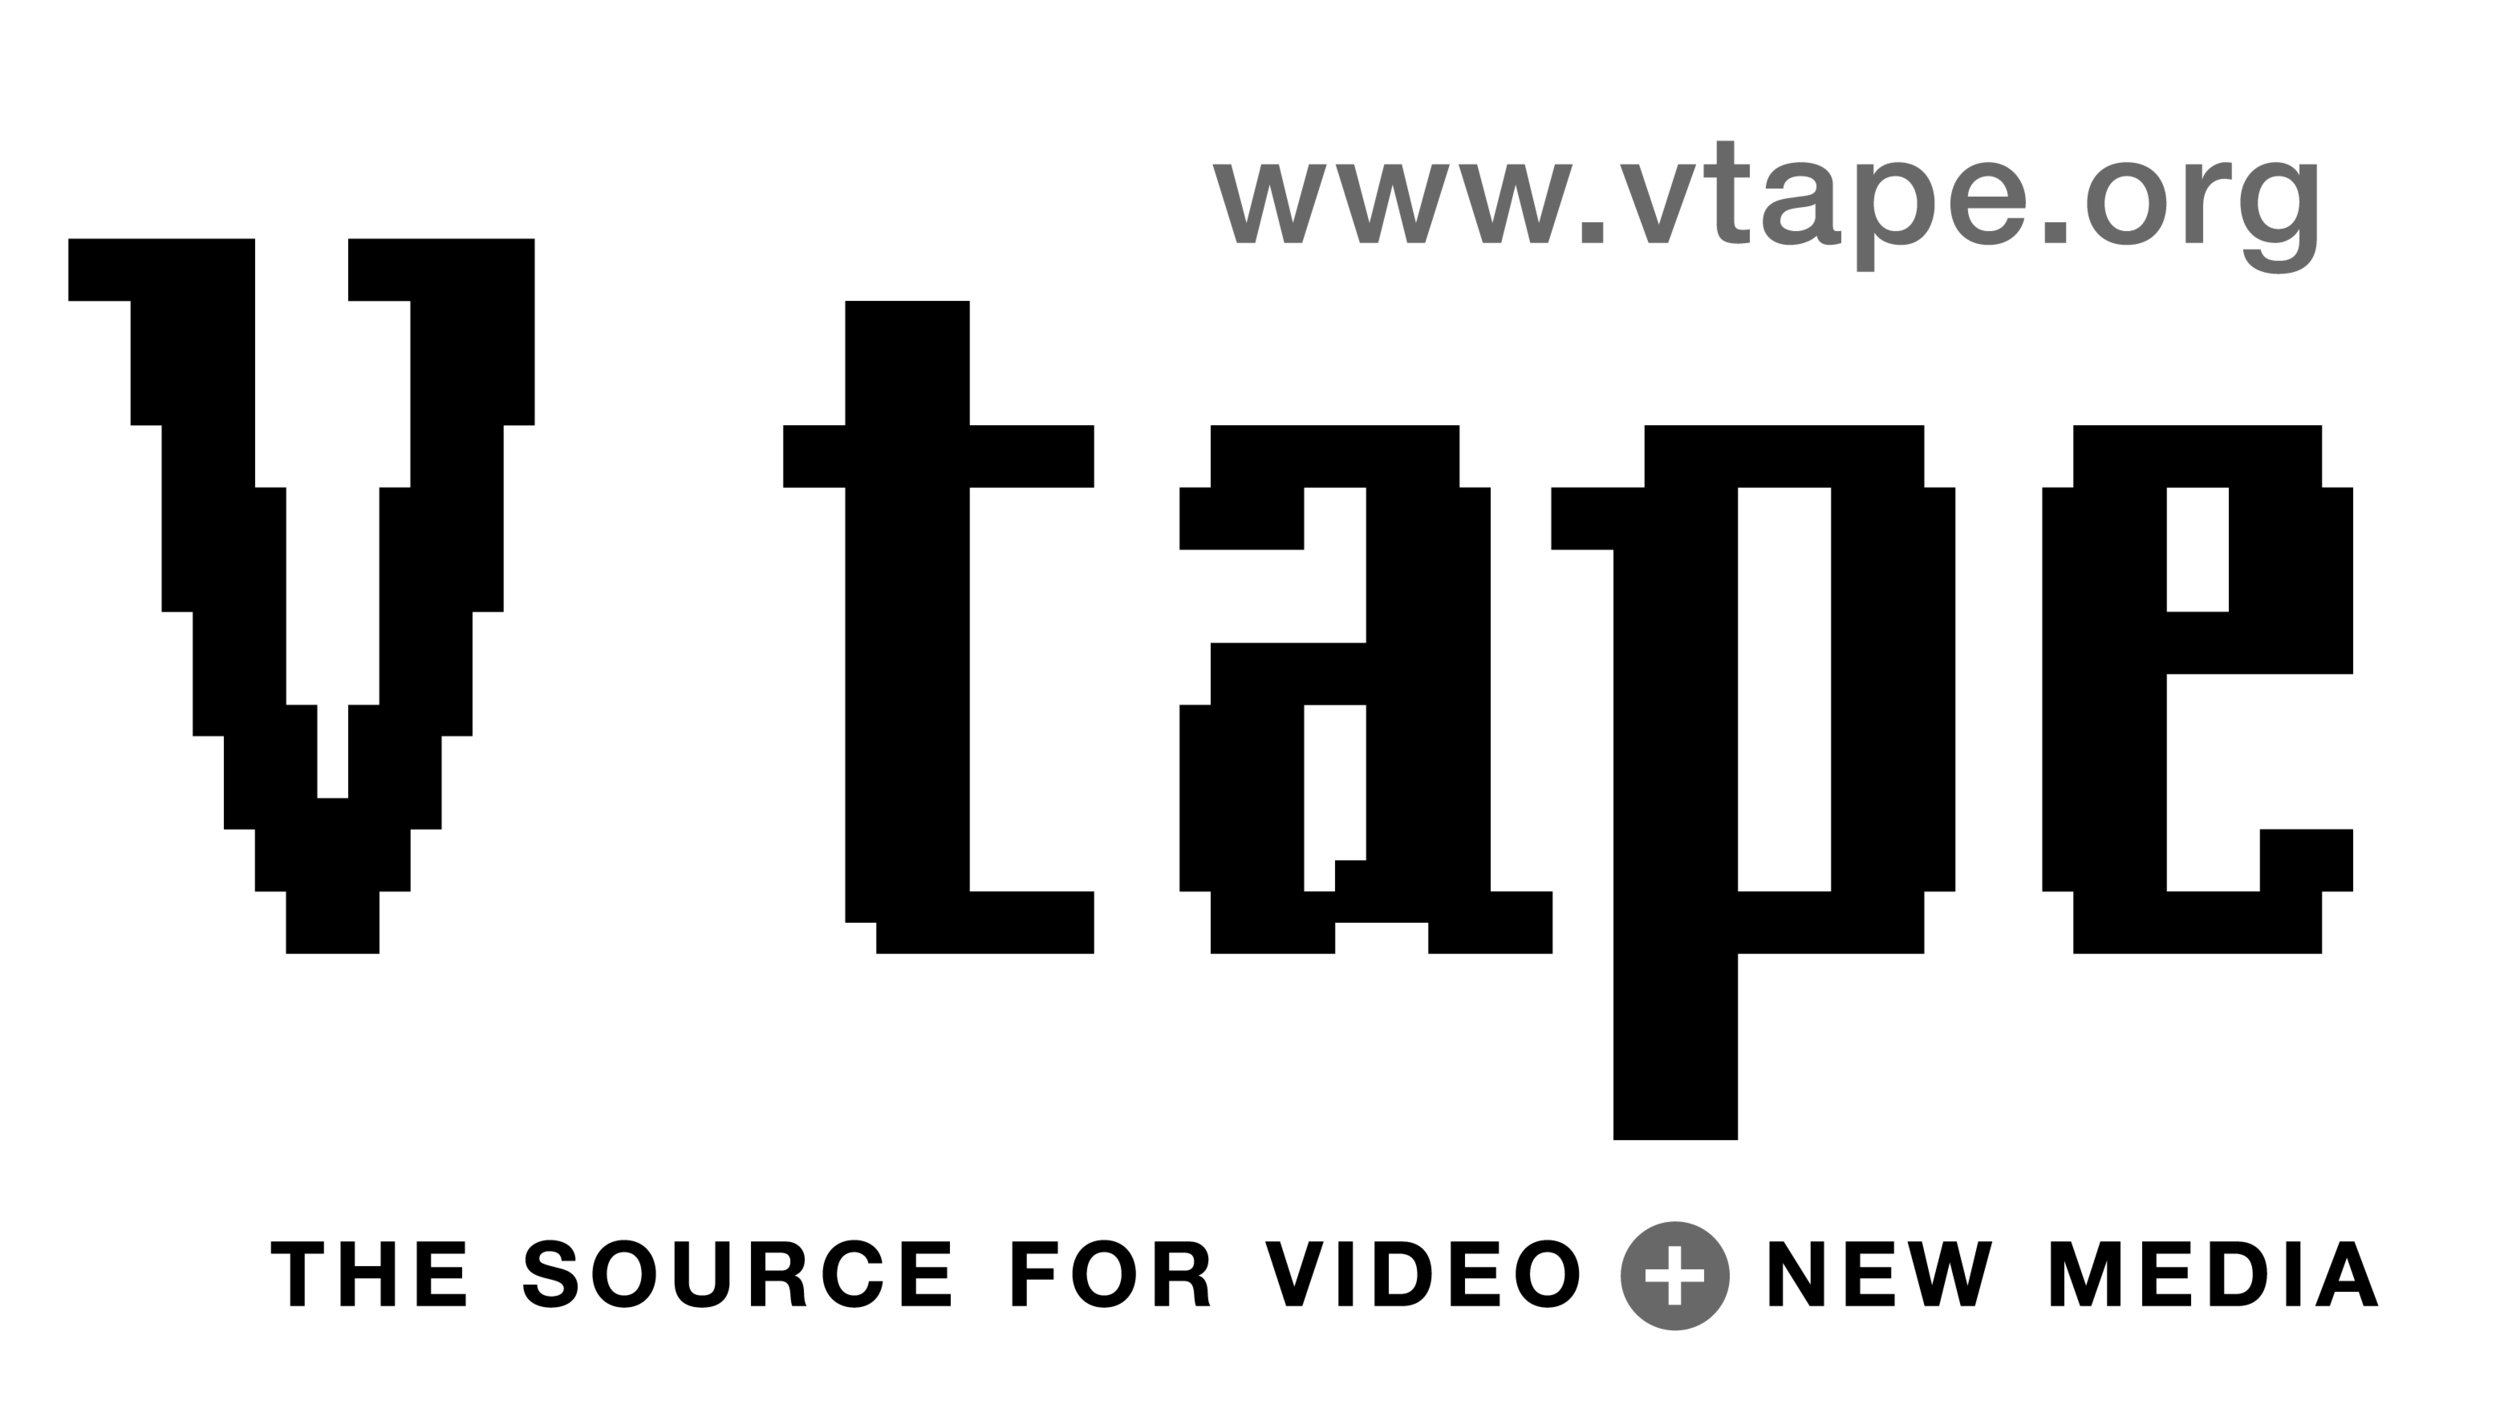 vtape_thesource_web.jpg